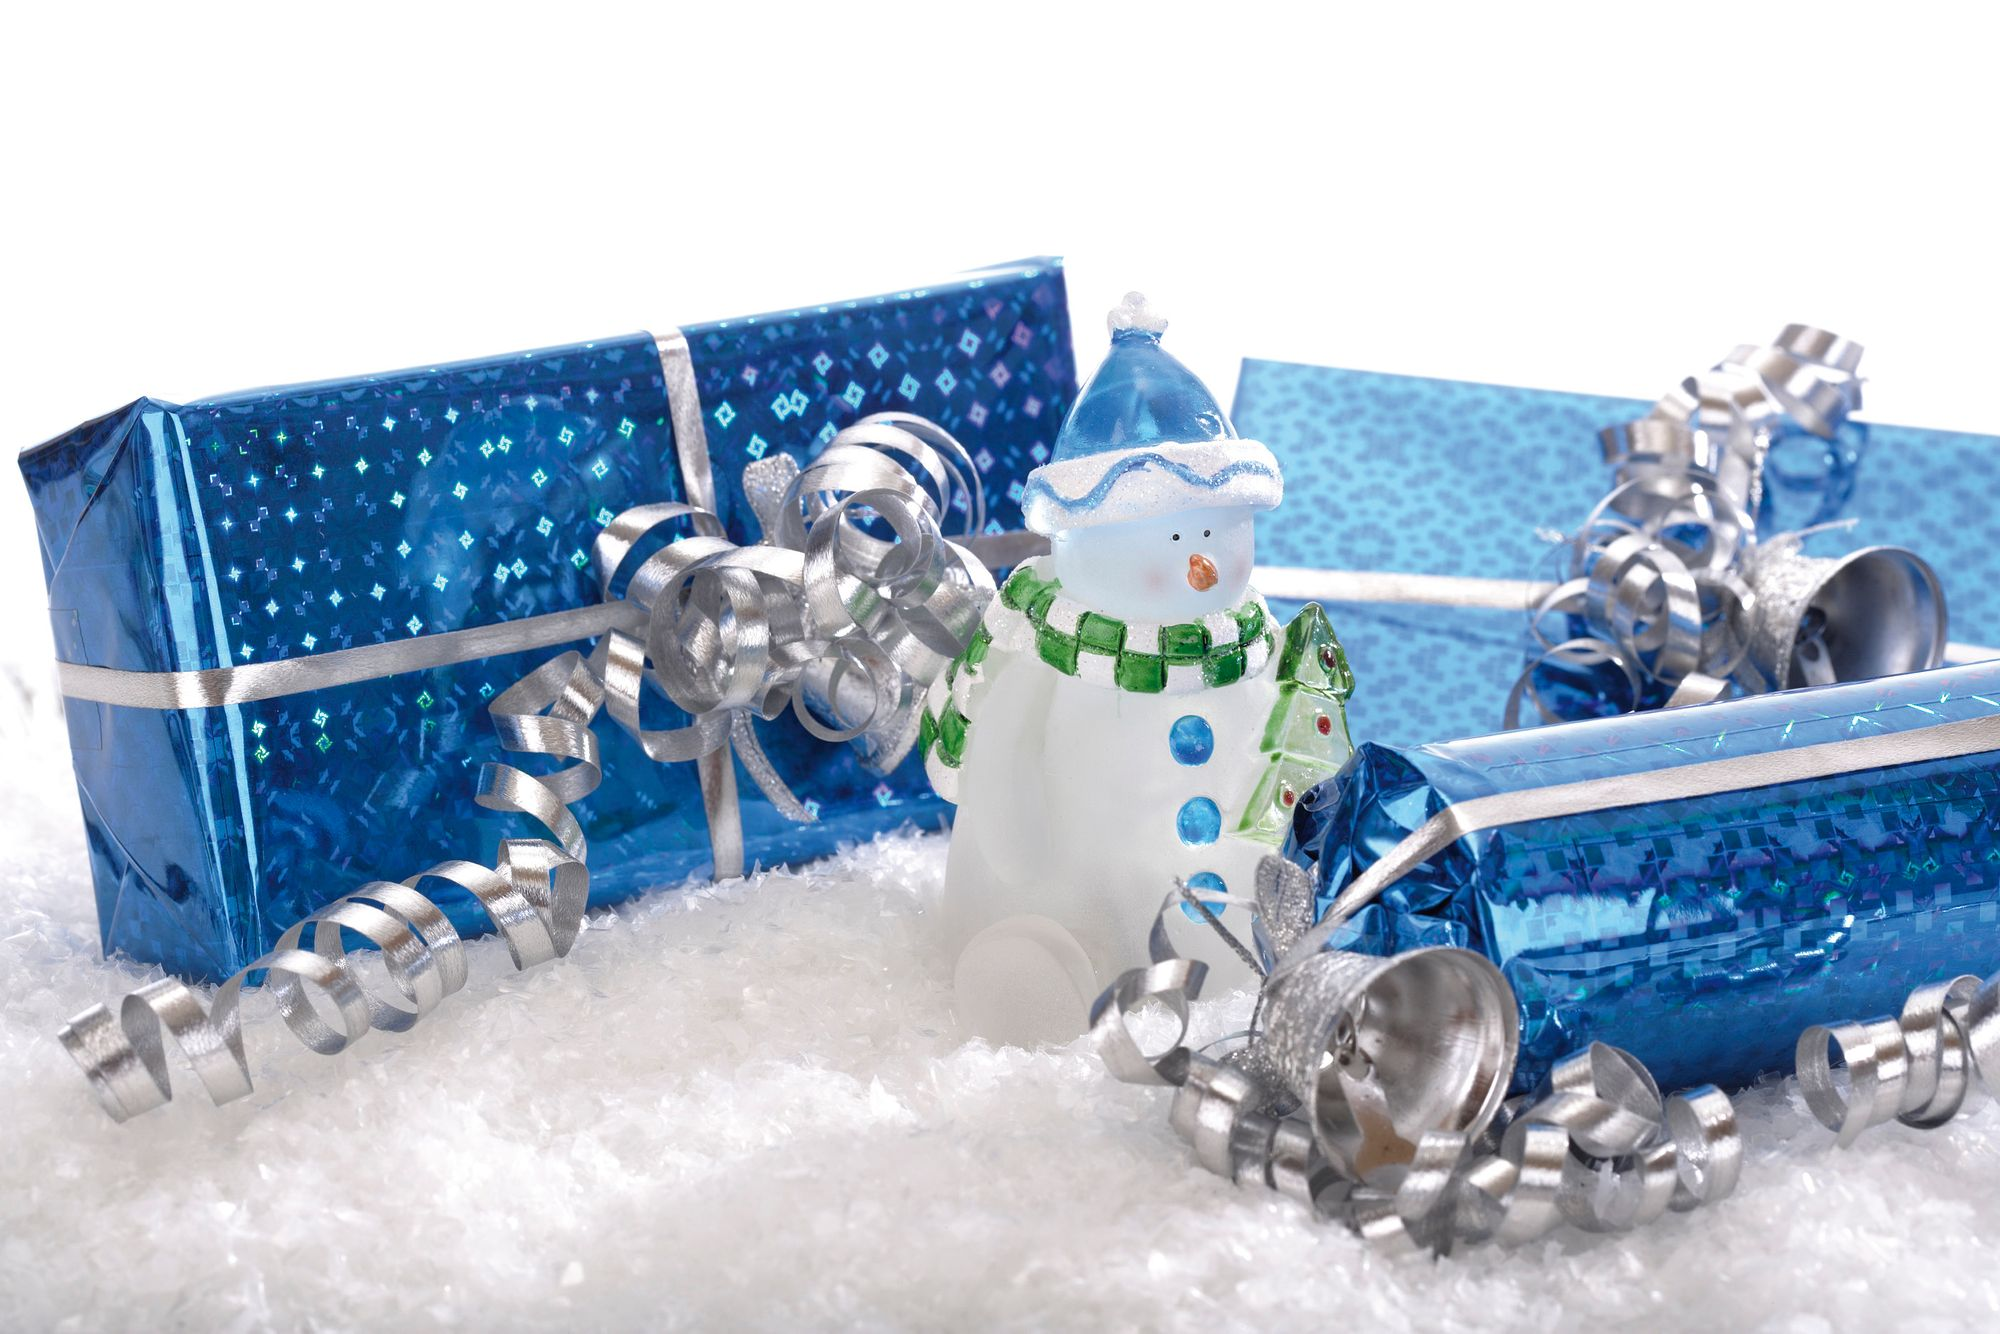 IIoT out of the gift box: your chance to win a digital package from Santa!